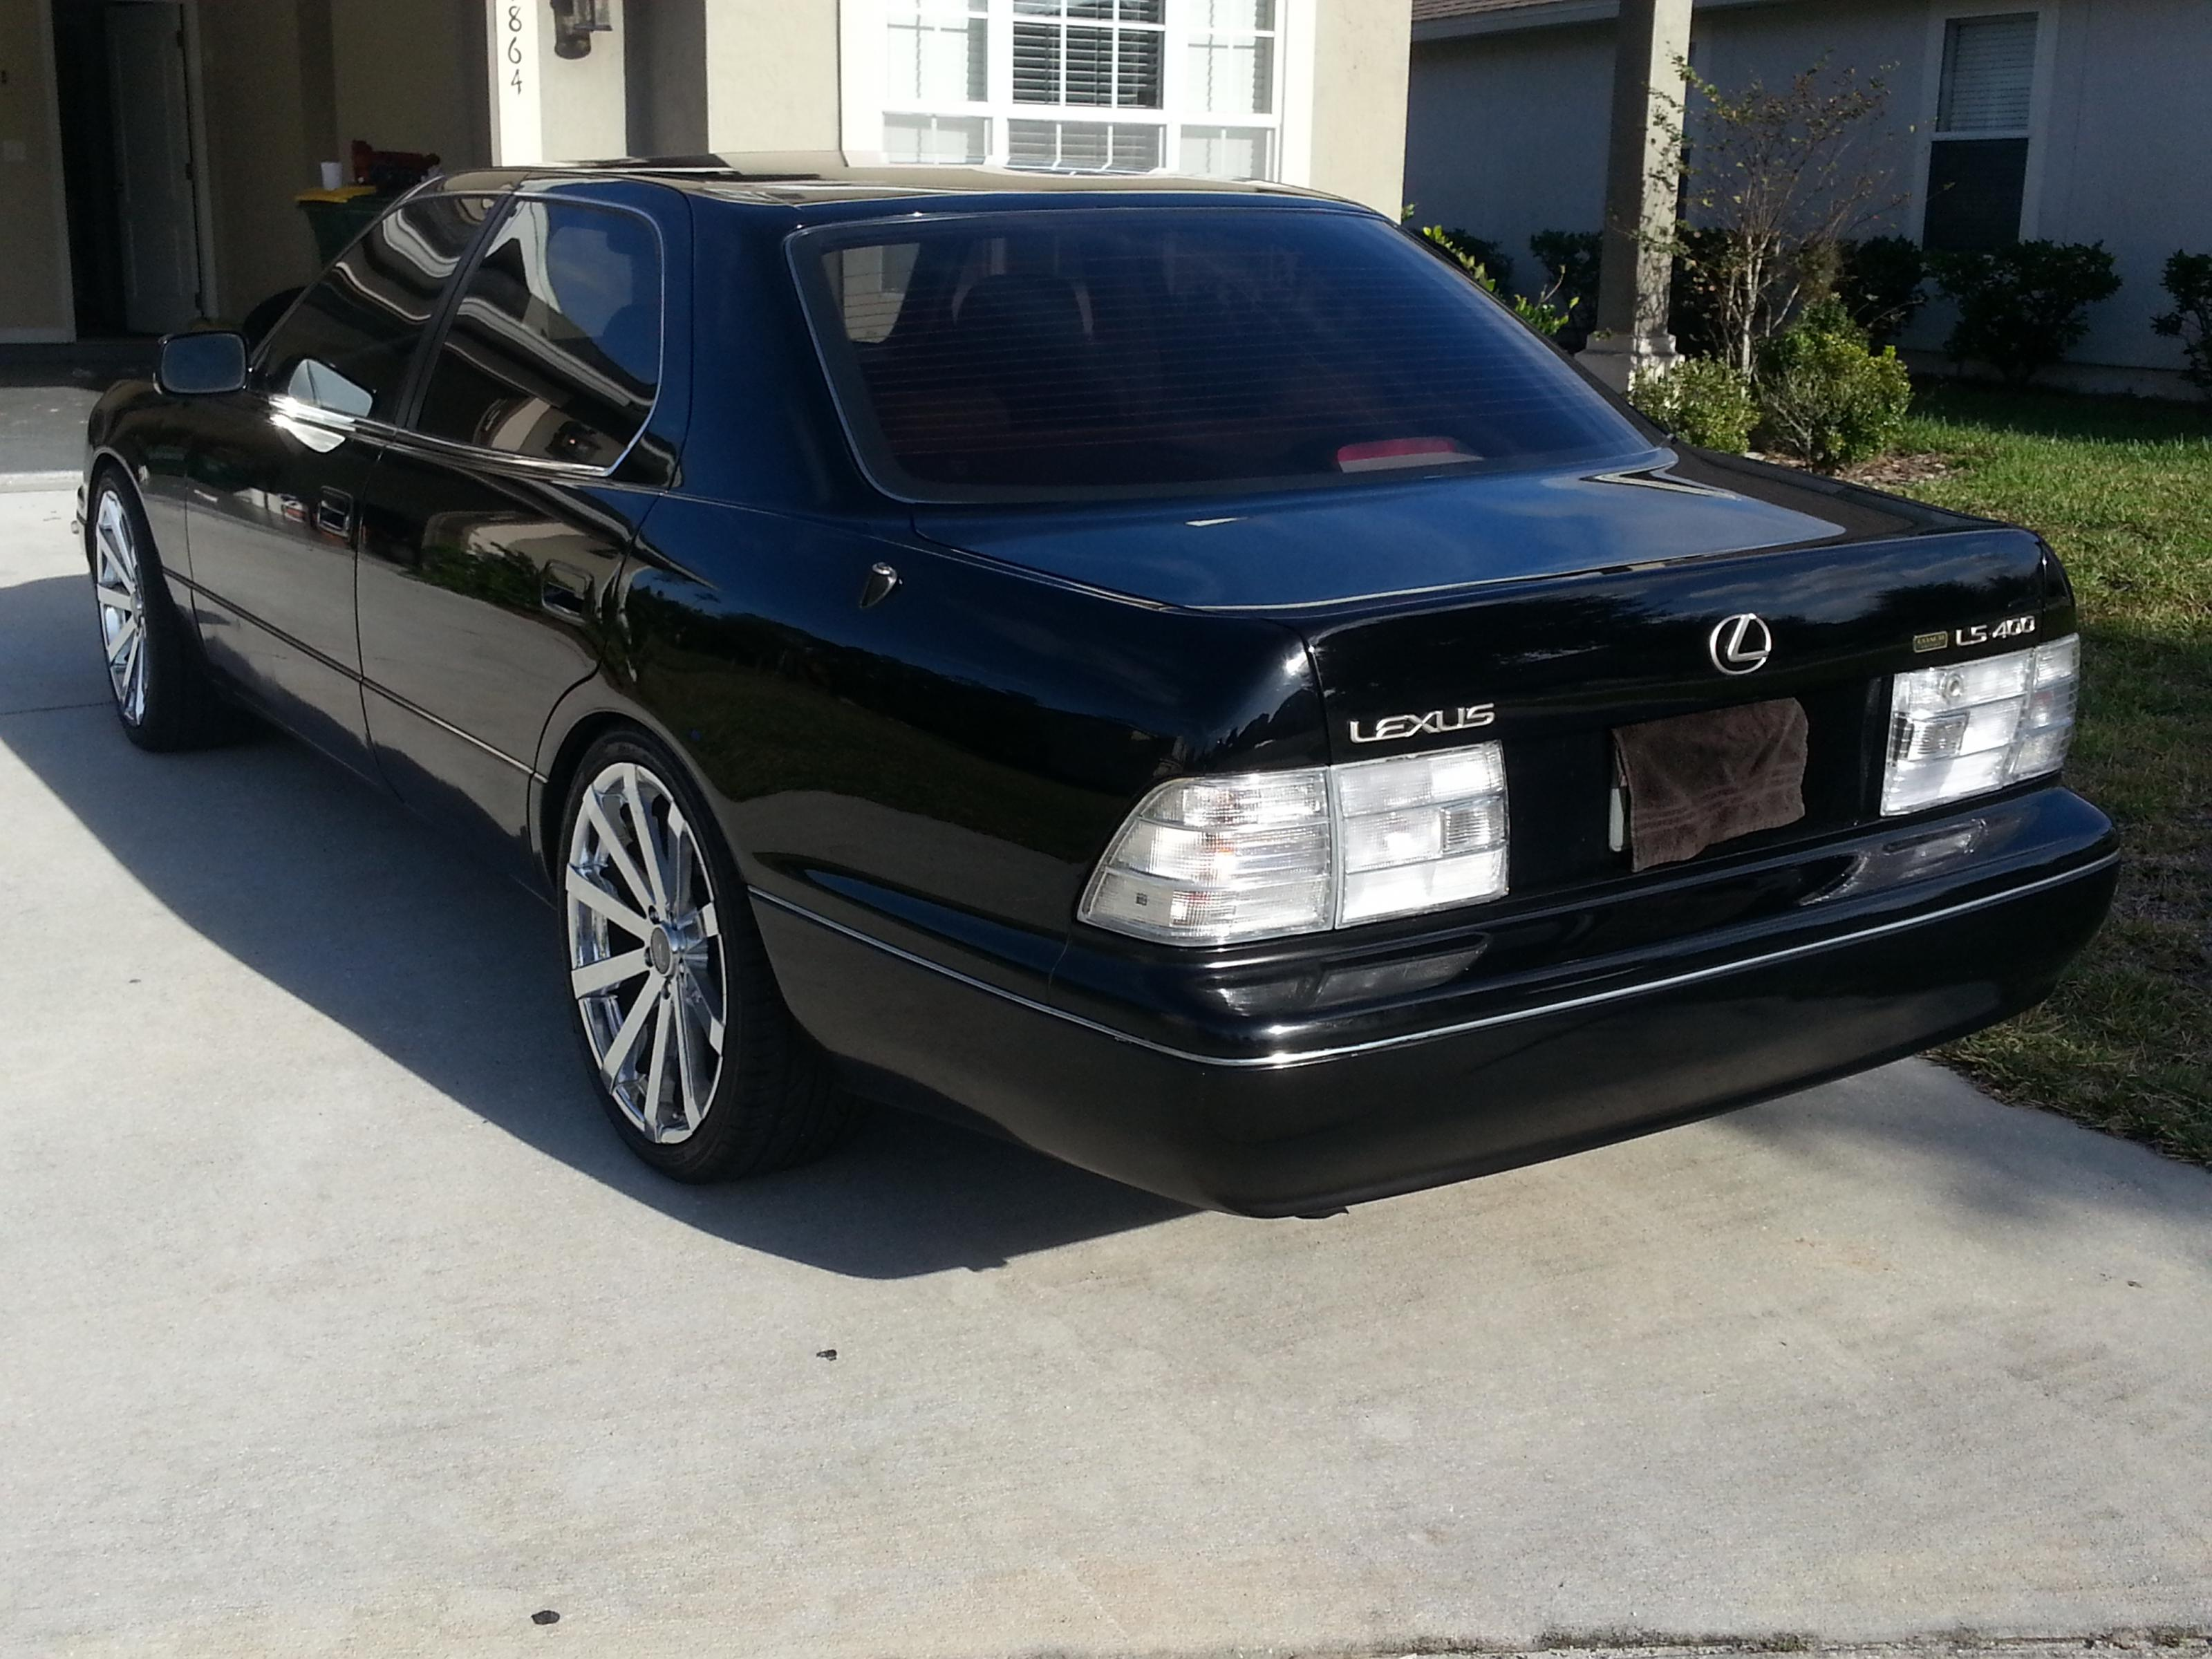 1996 Lexus Ls 400 Photos Informations Articles Wiring Diagram Ls400 27